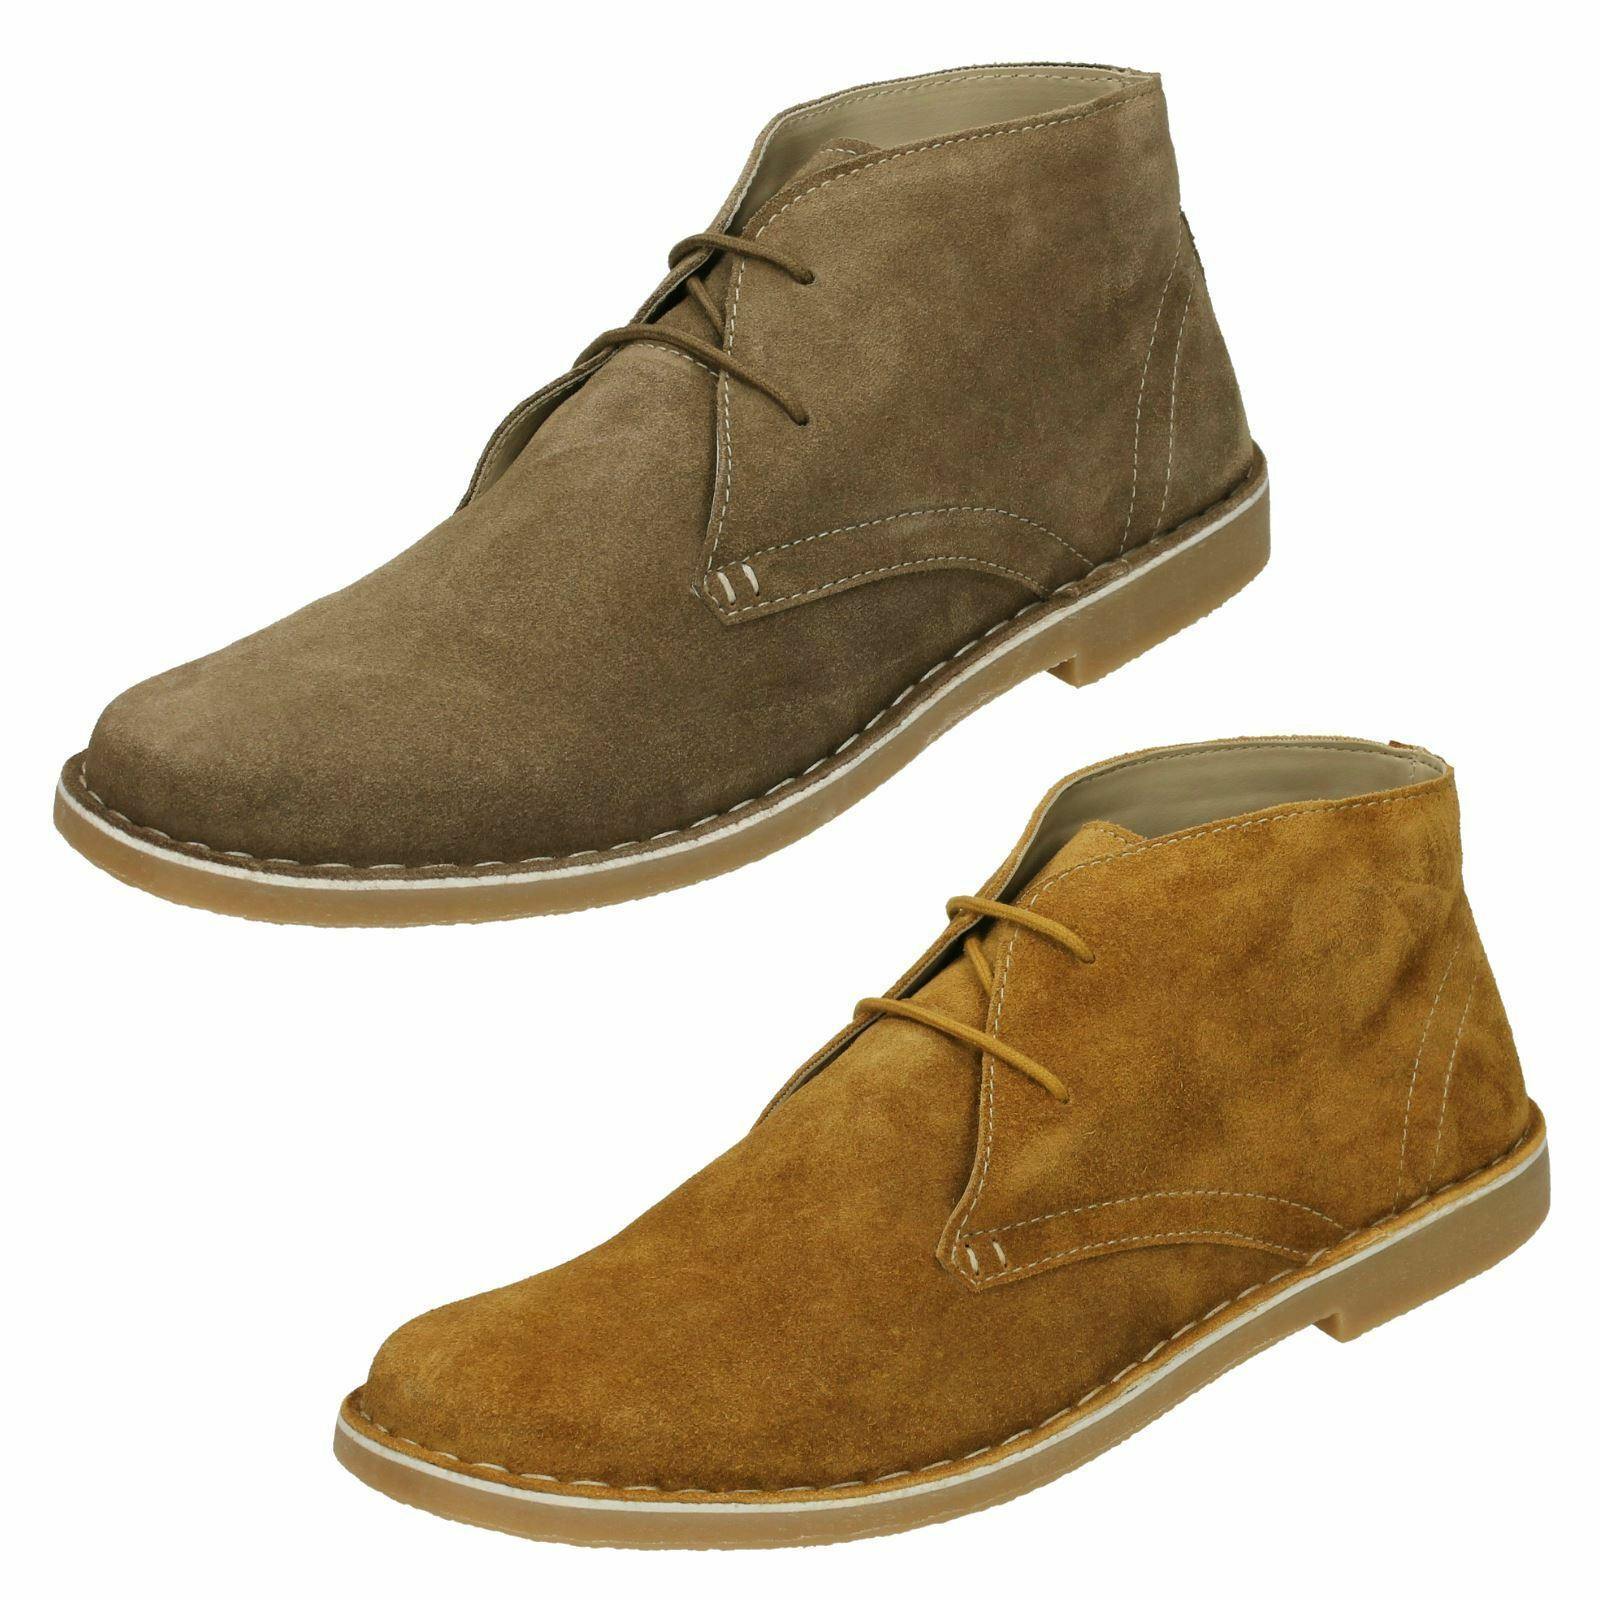 Mens CARNABY suede leather lace up Ankle Boot By Lambretta